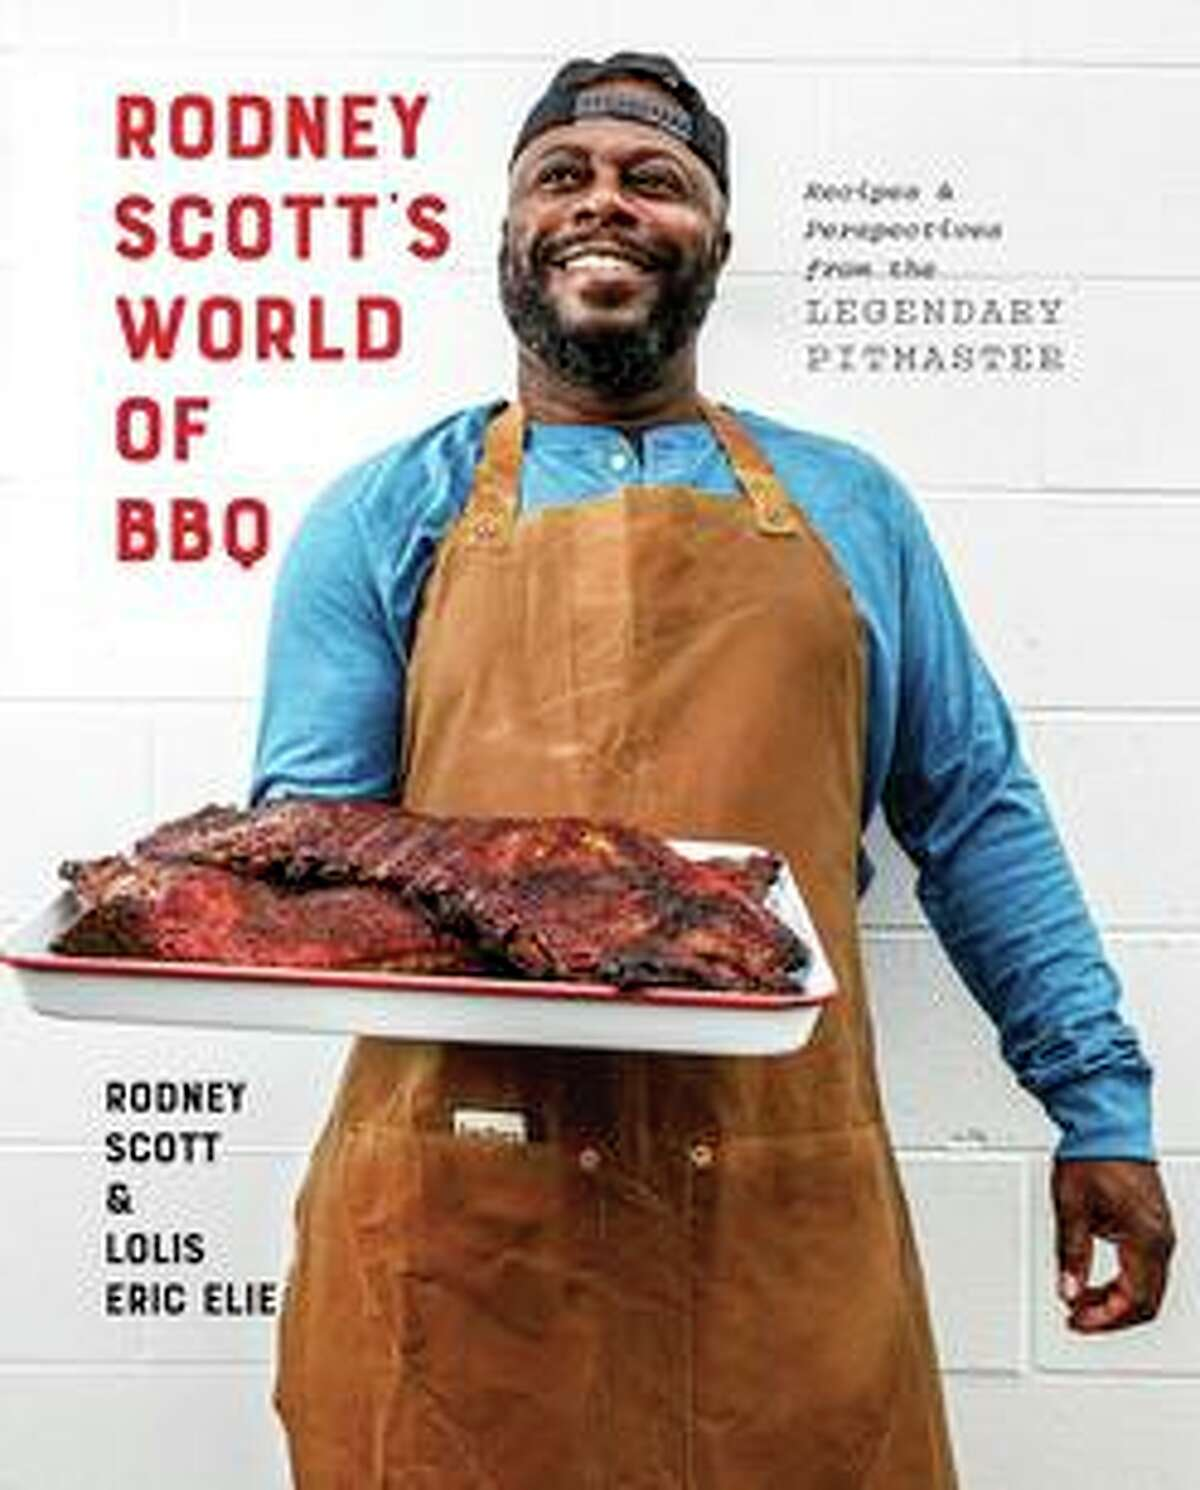 """Cover of the cookbook """"Rodney Scott's World of BBQ"""" by Rodney Scott and Lolis Eric Elie."""